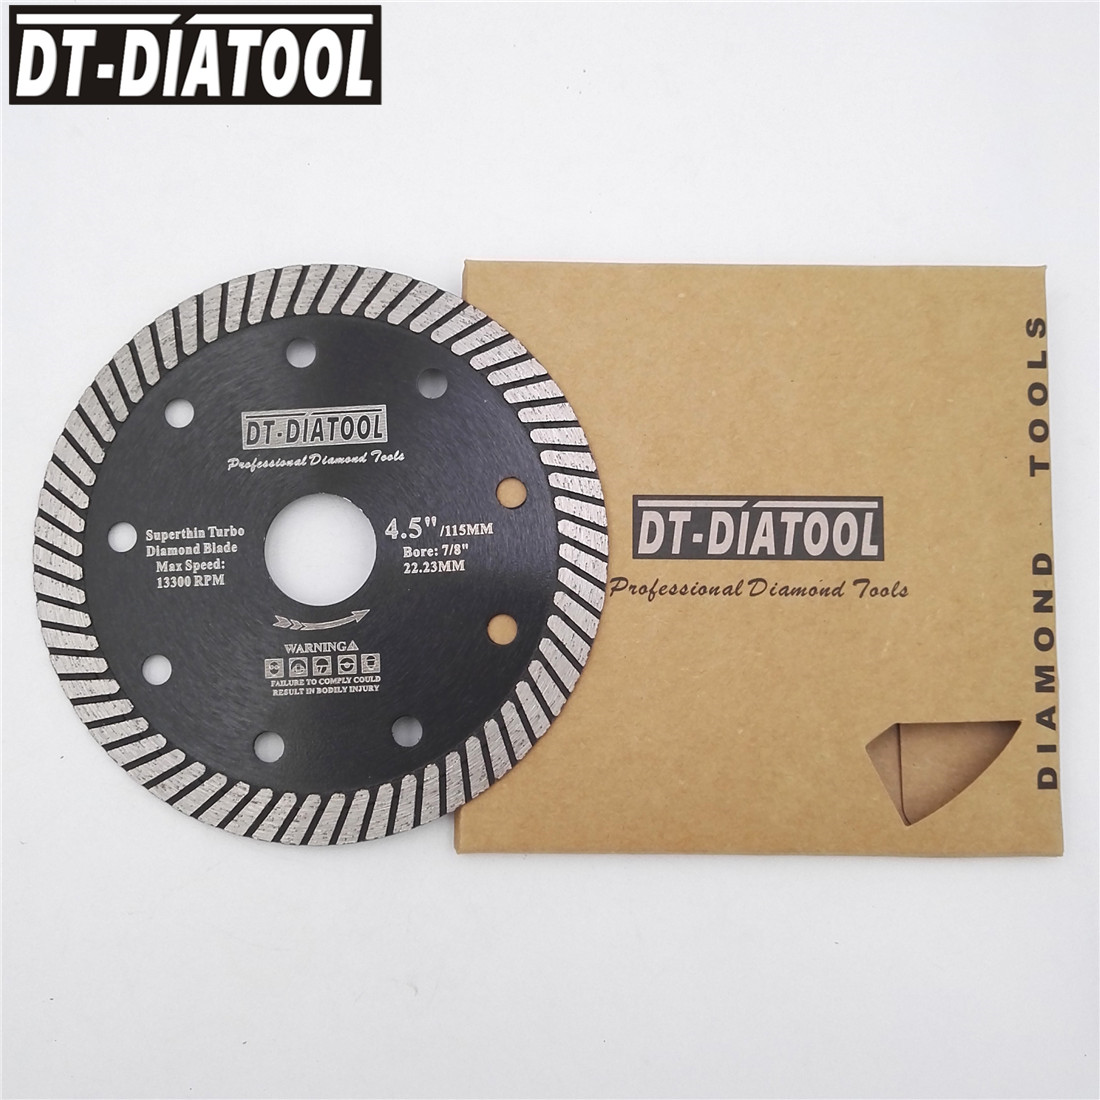 DT-DIATOOL Super-Thin Hot Pressed Turbo Diamond Blade Diamond cutting disc Dia105/115/125mm Grinding wheel Marble Tile Granite 2 pcs super thin sintered diamond blade cutting disc for jade agate stone wet grinding with cooling water jgs031